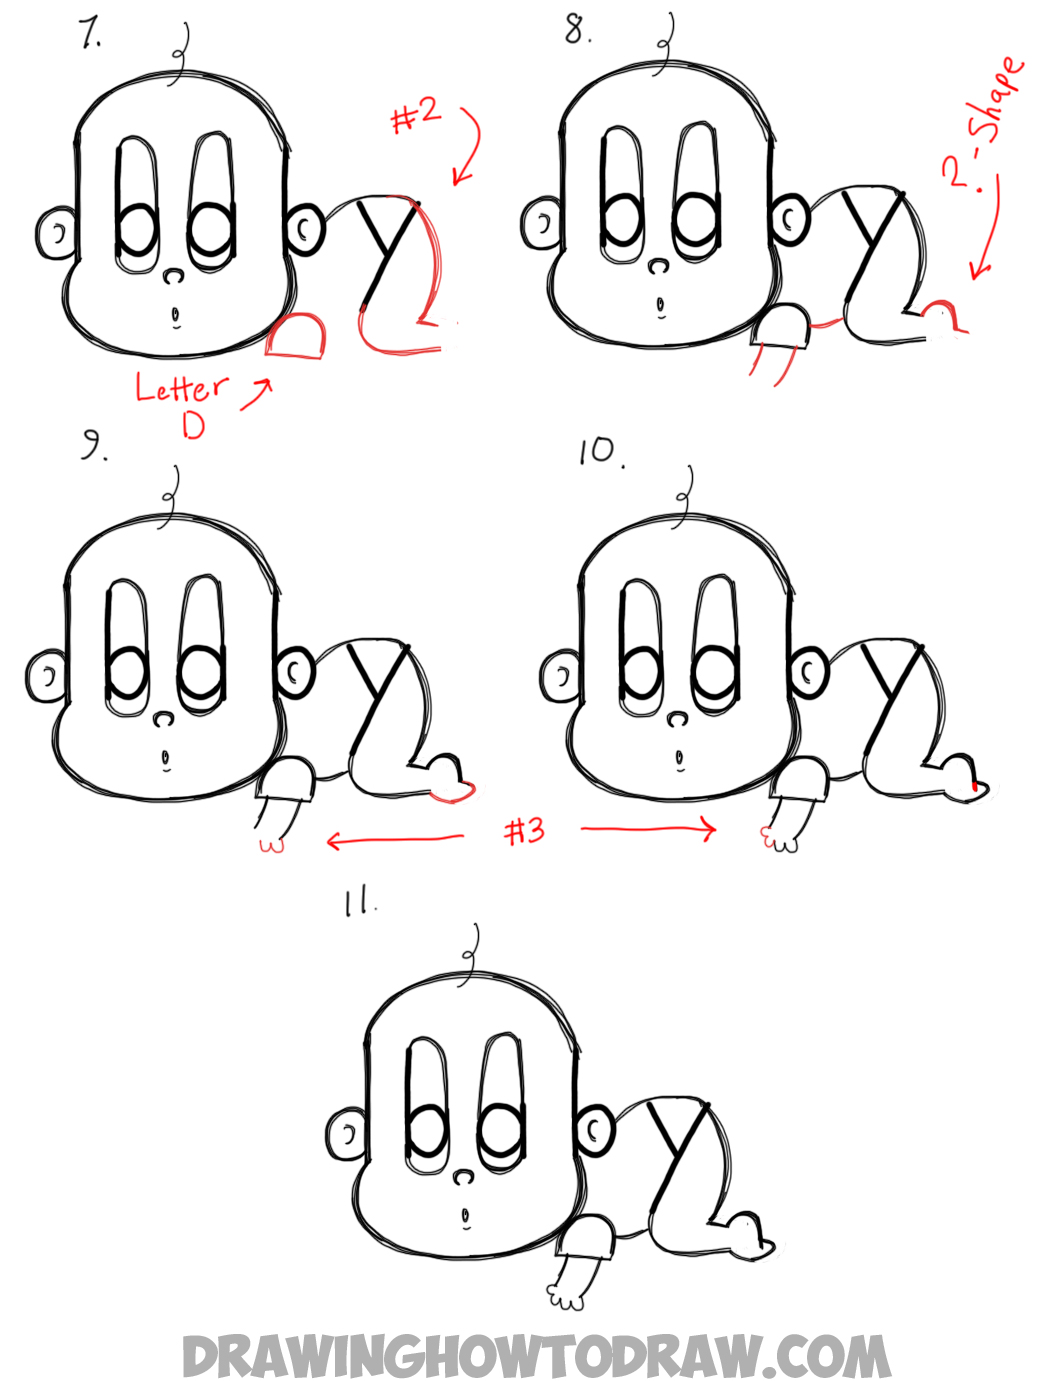 Alphabet letters numbers drawing archives how to draw for How to make cartoon drawings step by step